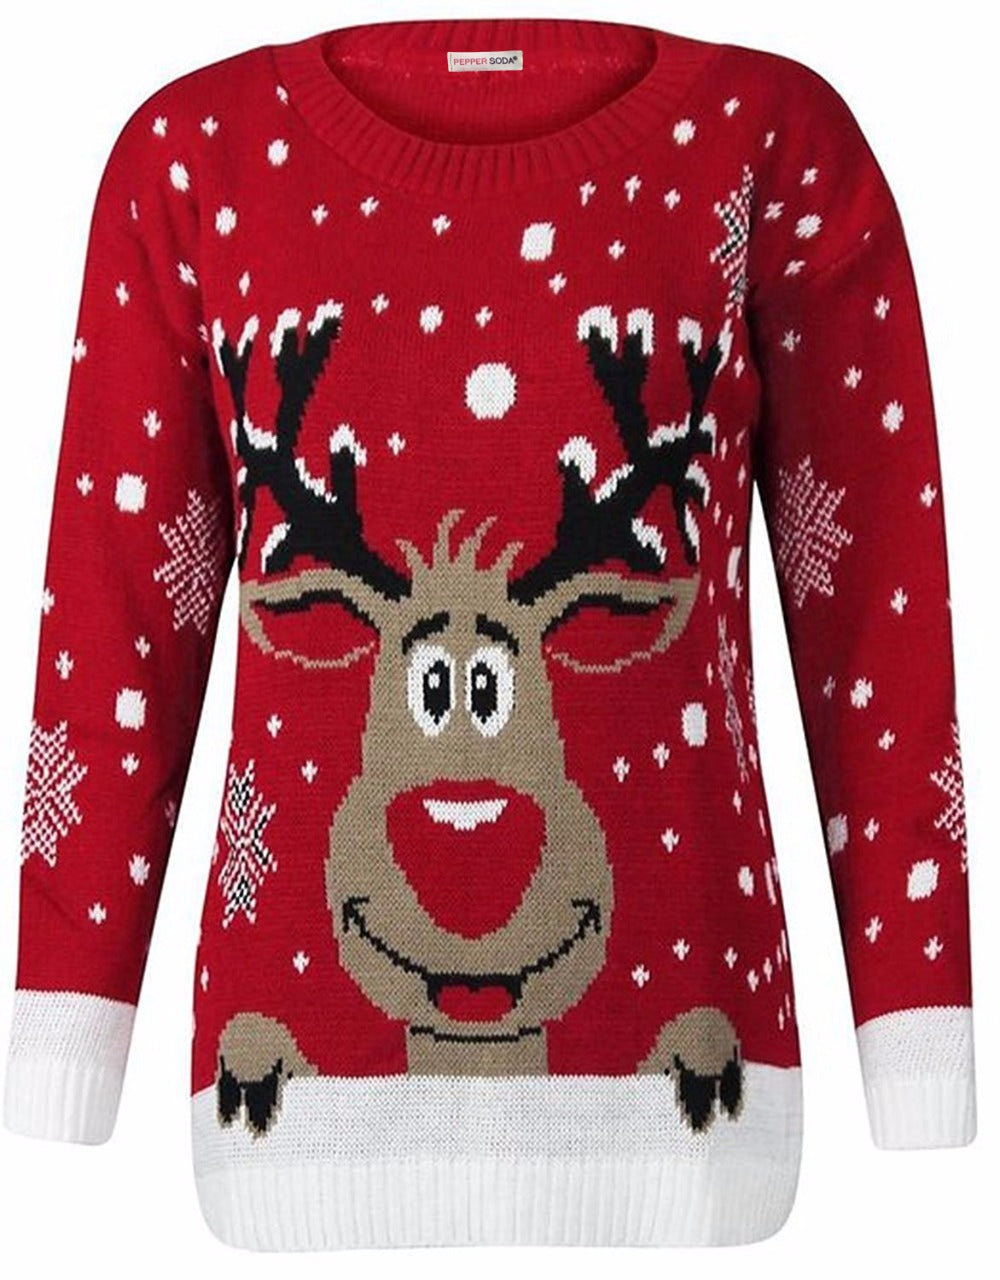 Renee Rudolph Reindeer Knitted Xmas Christmas Jumper Red